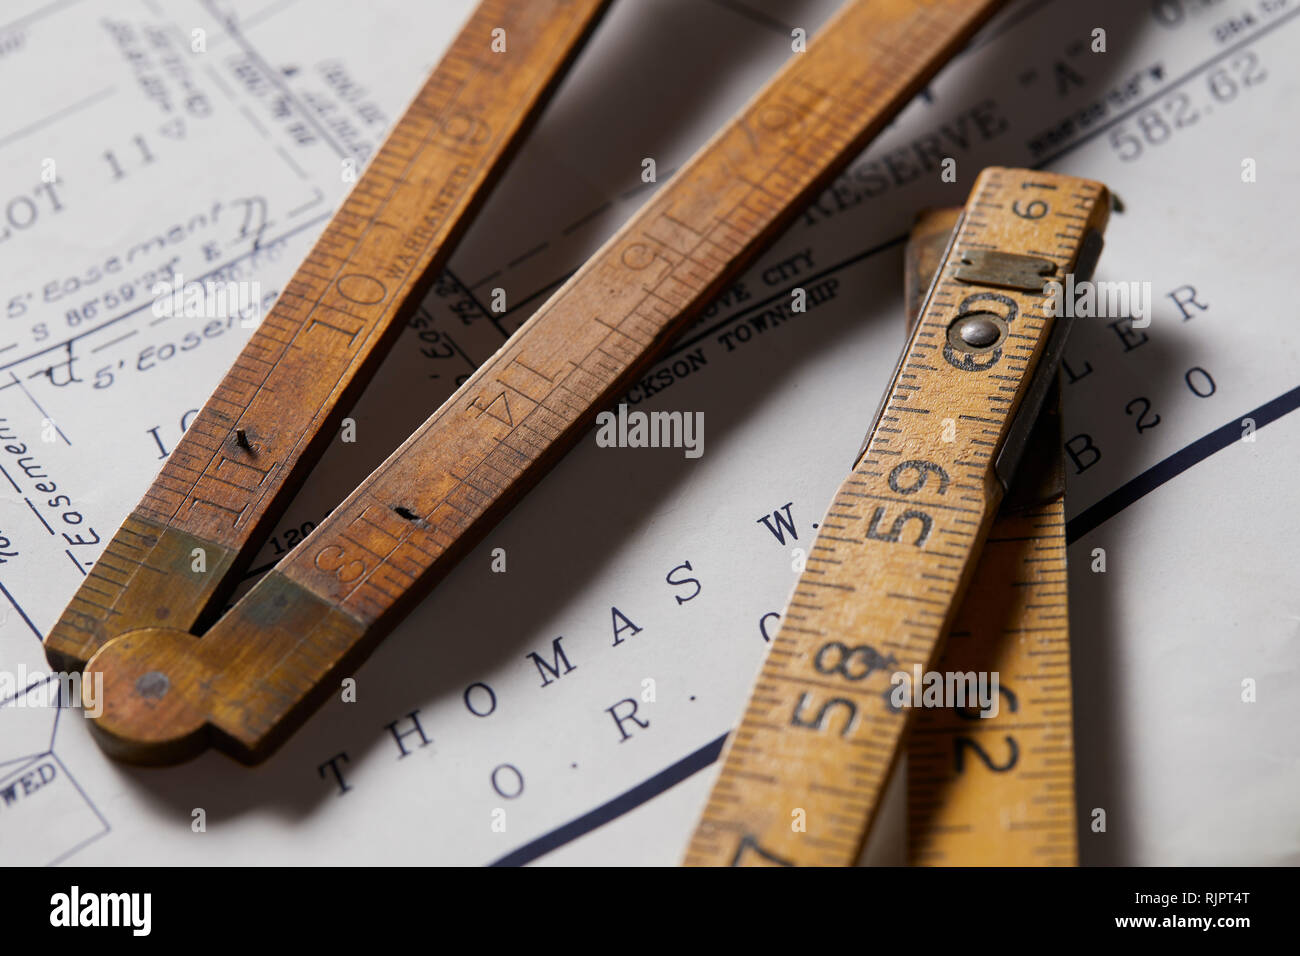 Vintage rulers on property map, close up - Stock Image